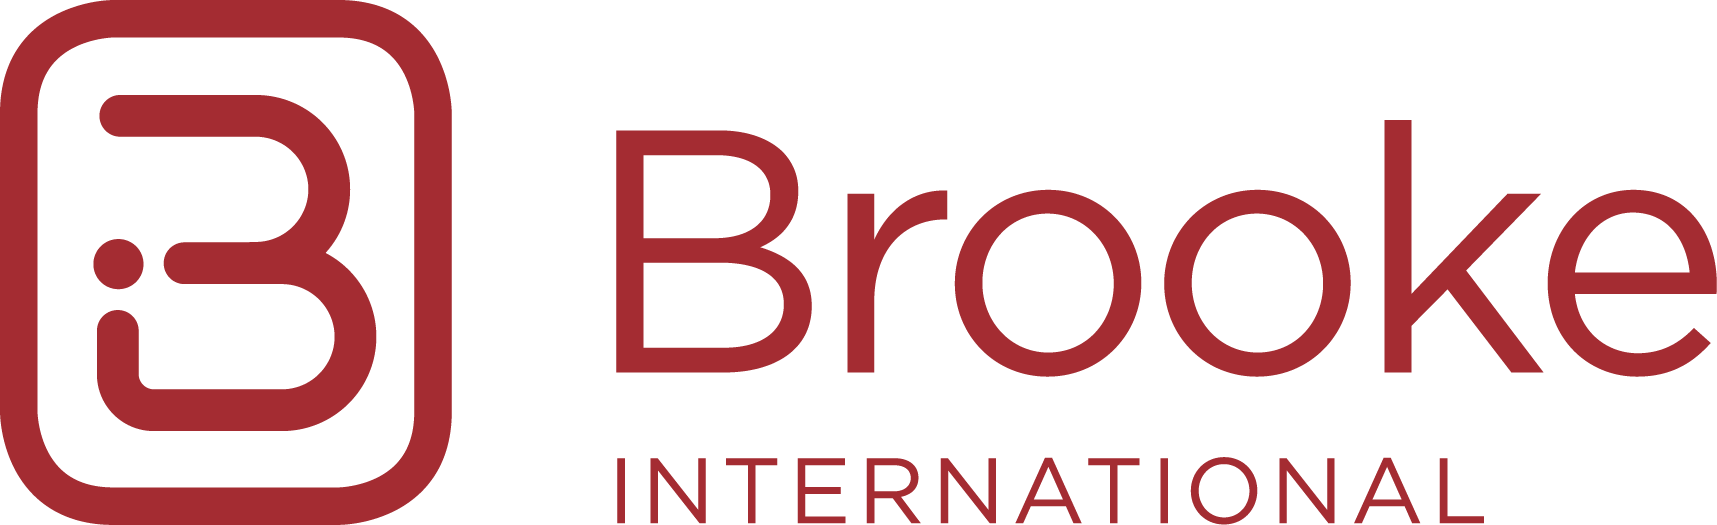 Brooke International